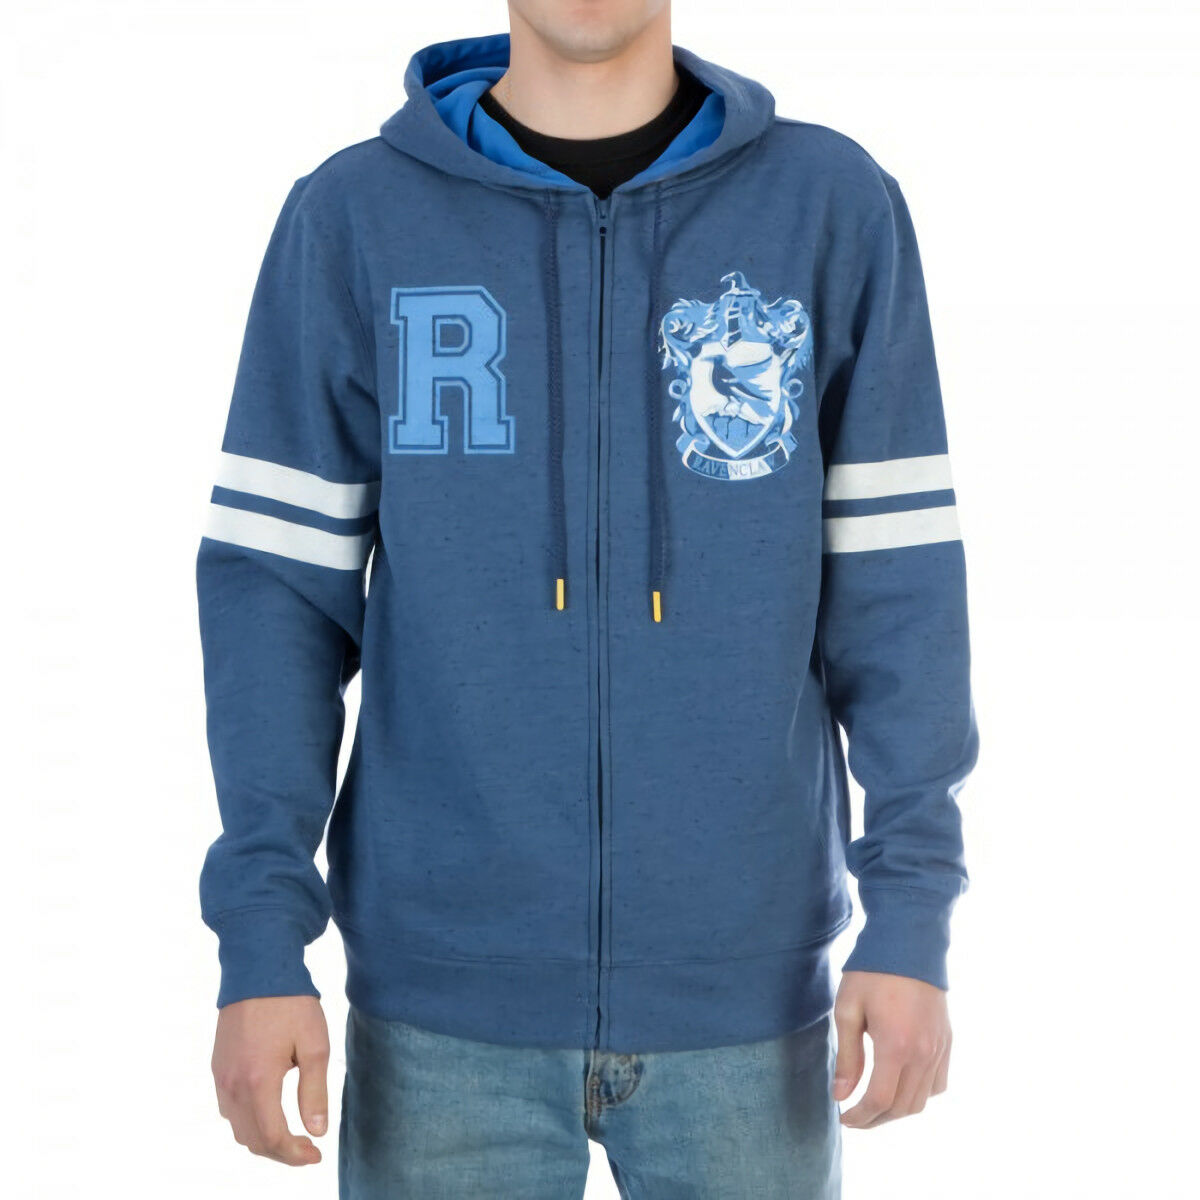 Harry potter ravenclaw - symbol zip up kapuzenpulli sweatshirt